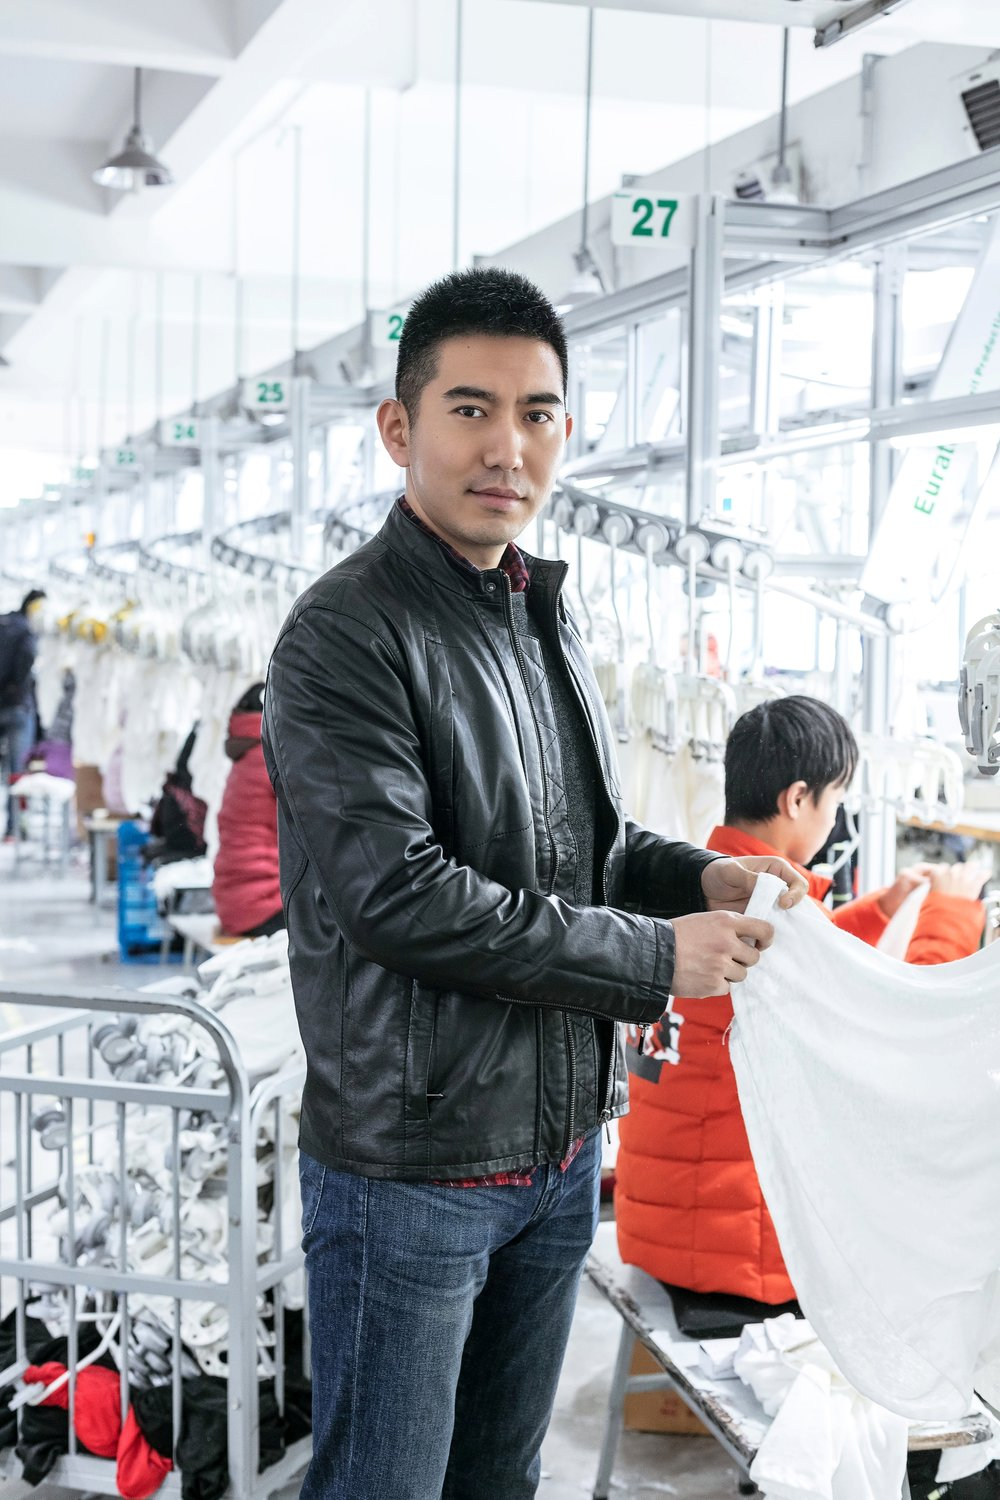 F A C T O R Y - We investigated factories all around the world to ensure the highest possible production quality for our undershirts. We were led to this East China factory by its first-rate industry reputation. Since 2013, this knitting factory has been producing top quality products for a range of established international designer brands.